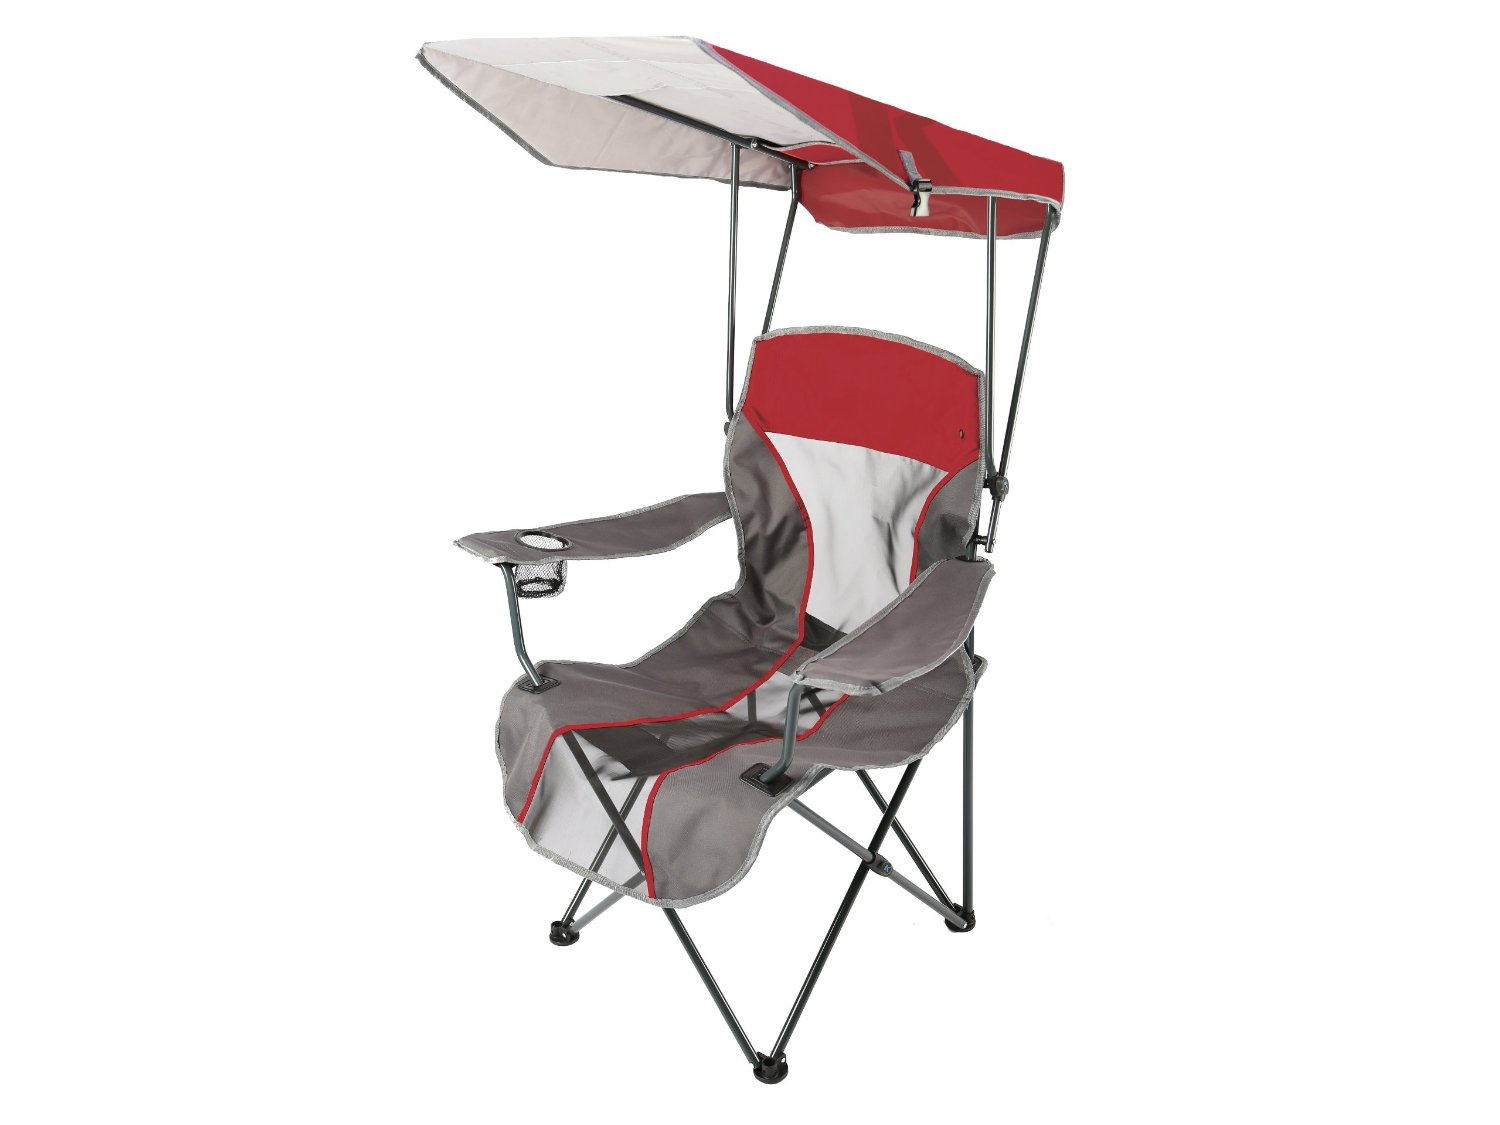 kids chair with canopy anna cover & wedding linens rental burnaby bc tent lookup beforebuying